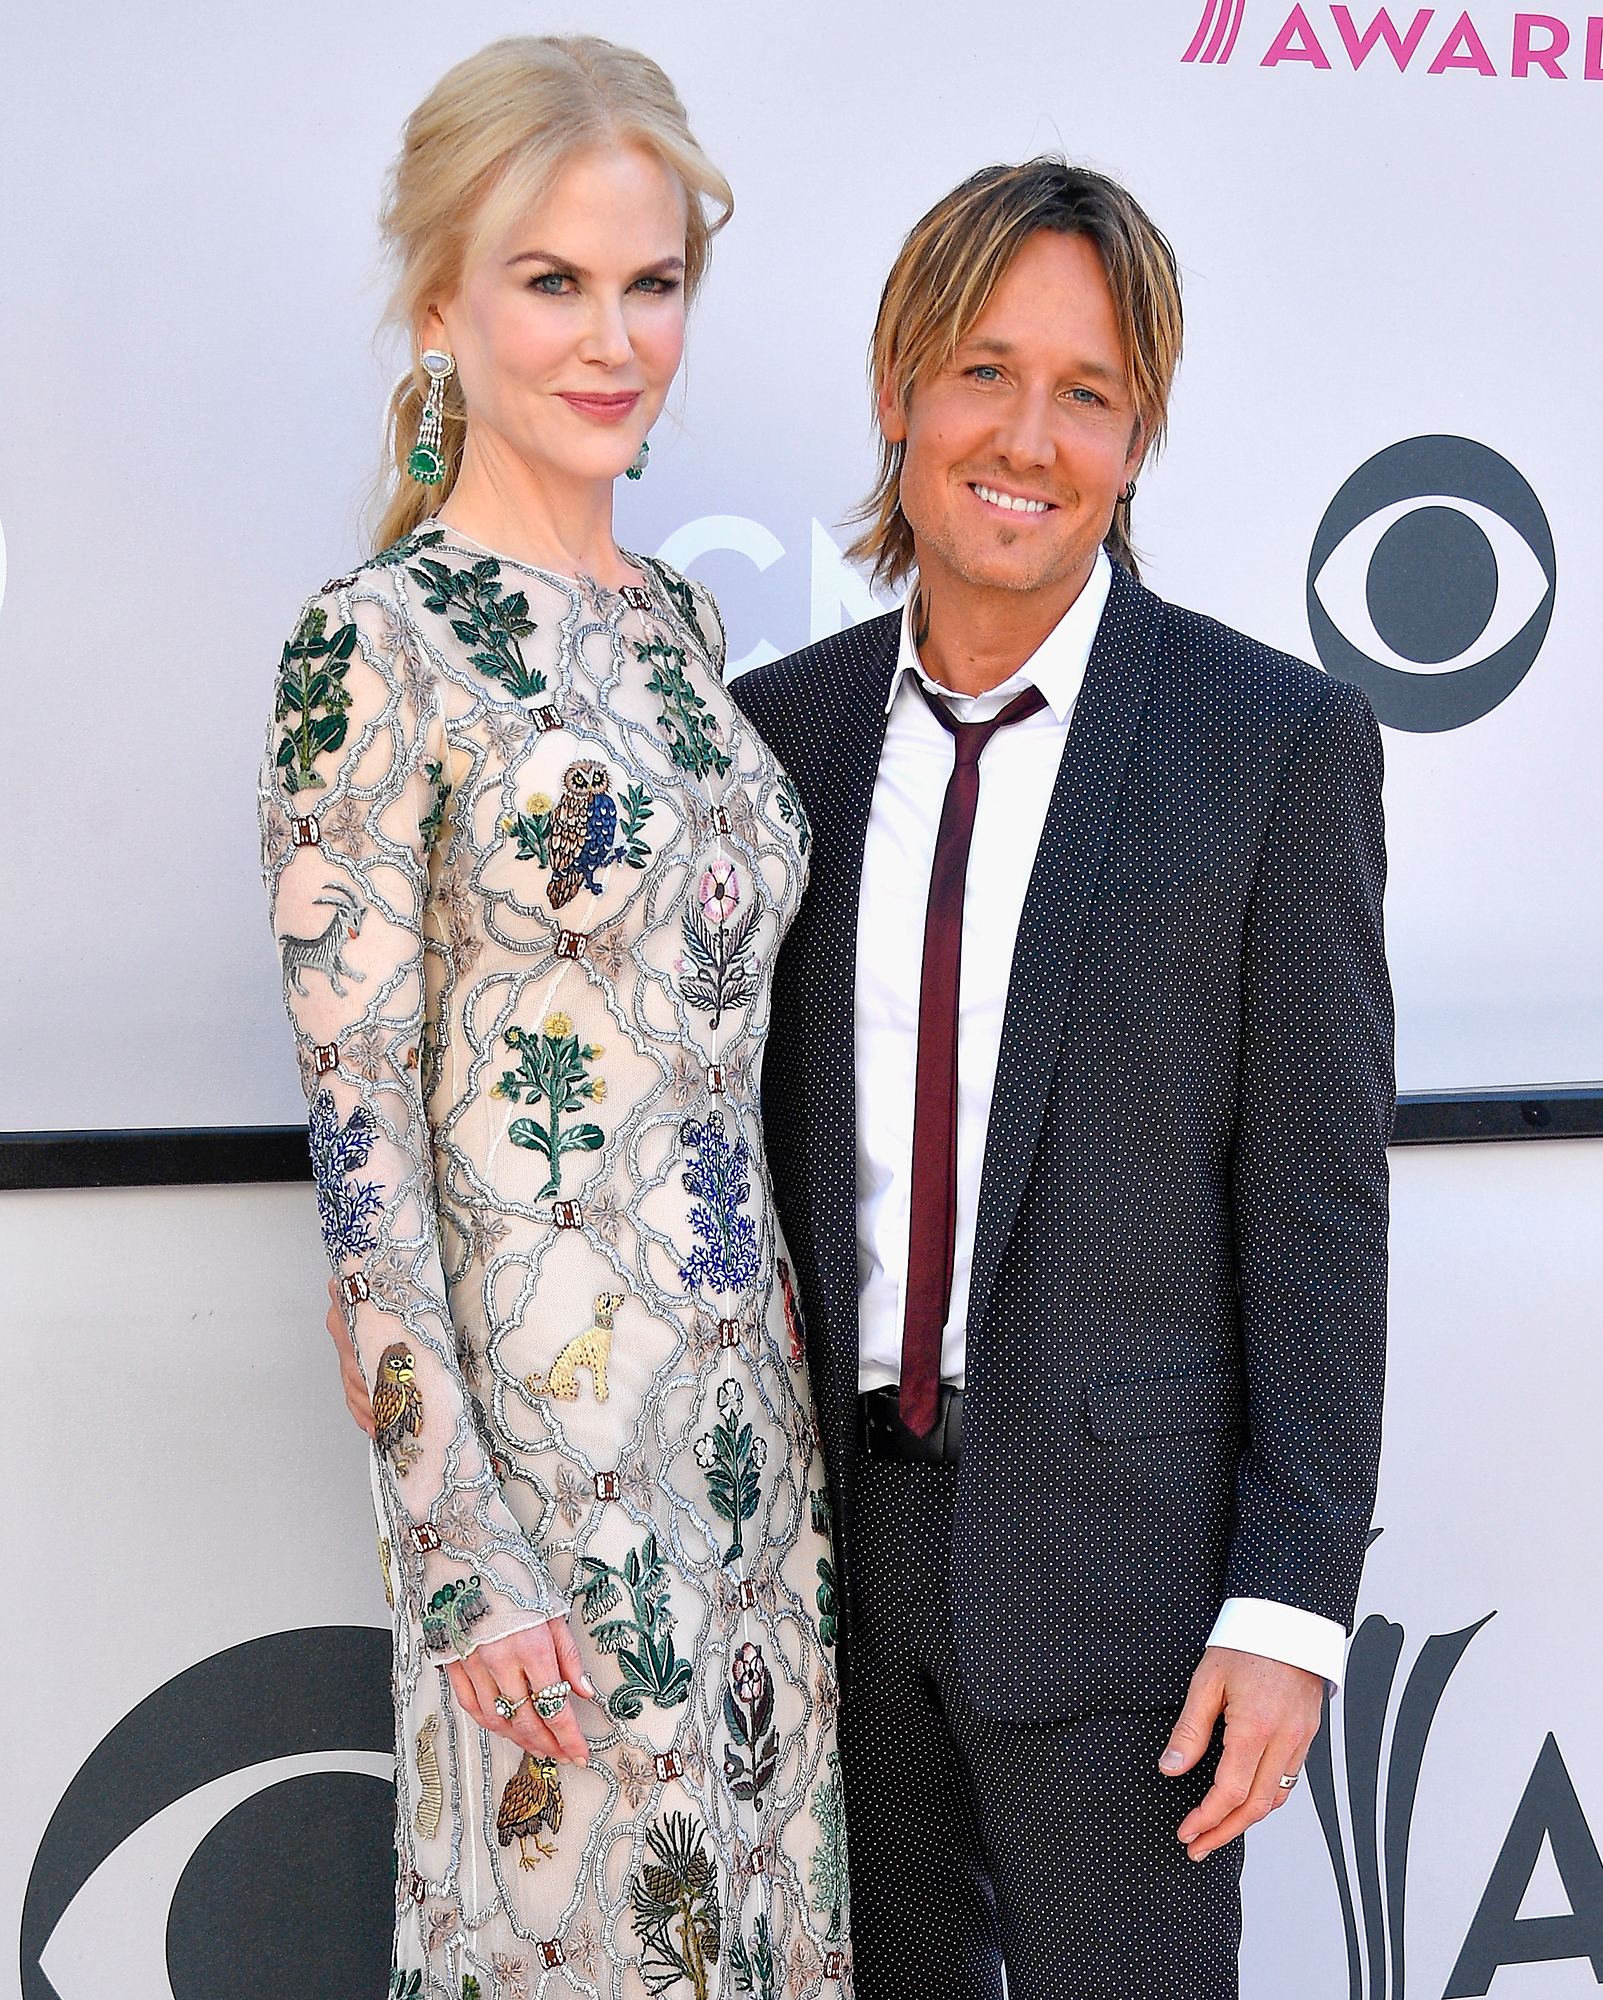 Keith Urban Gets the 'Right Sound' — in Hotel Bathroom! See Nicole Kidman's Photo of Her Husband